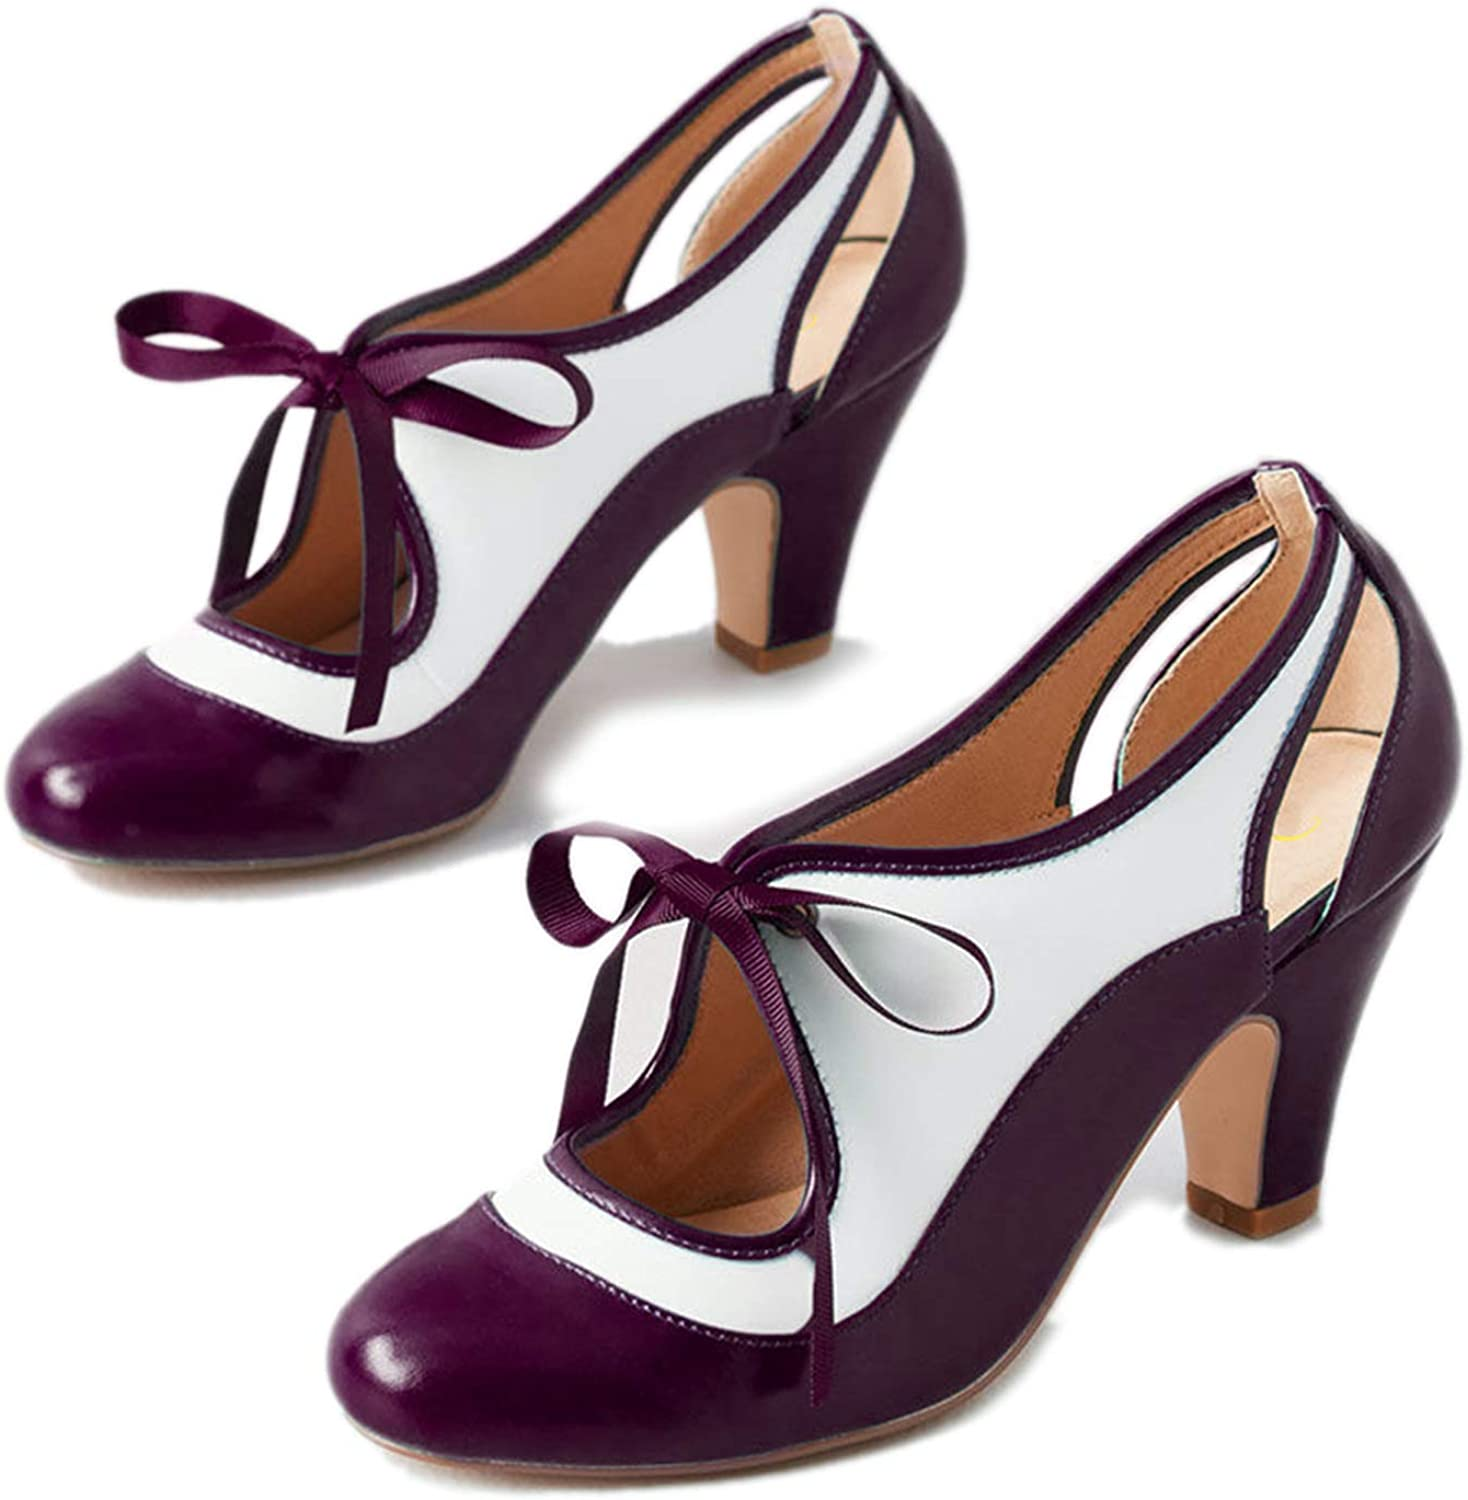 FOWT Round Toe Mid Chunky Heel Bow-Tie Lace Up Mary Jane Pumps for Women, Cut-Out Hollowed Block Heeled Closed Toe Brogue Oxford Shoes Lolita Cute Student Girls 4-16 M US